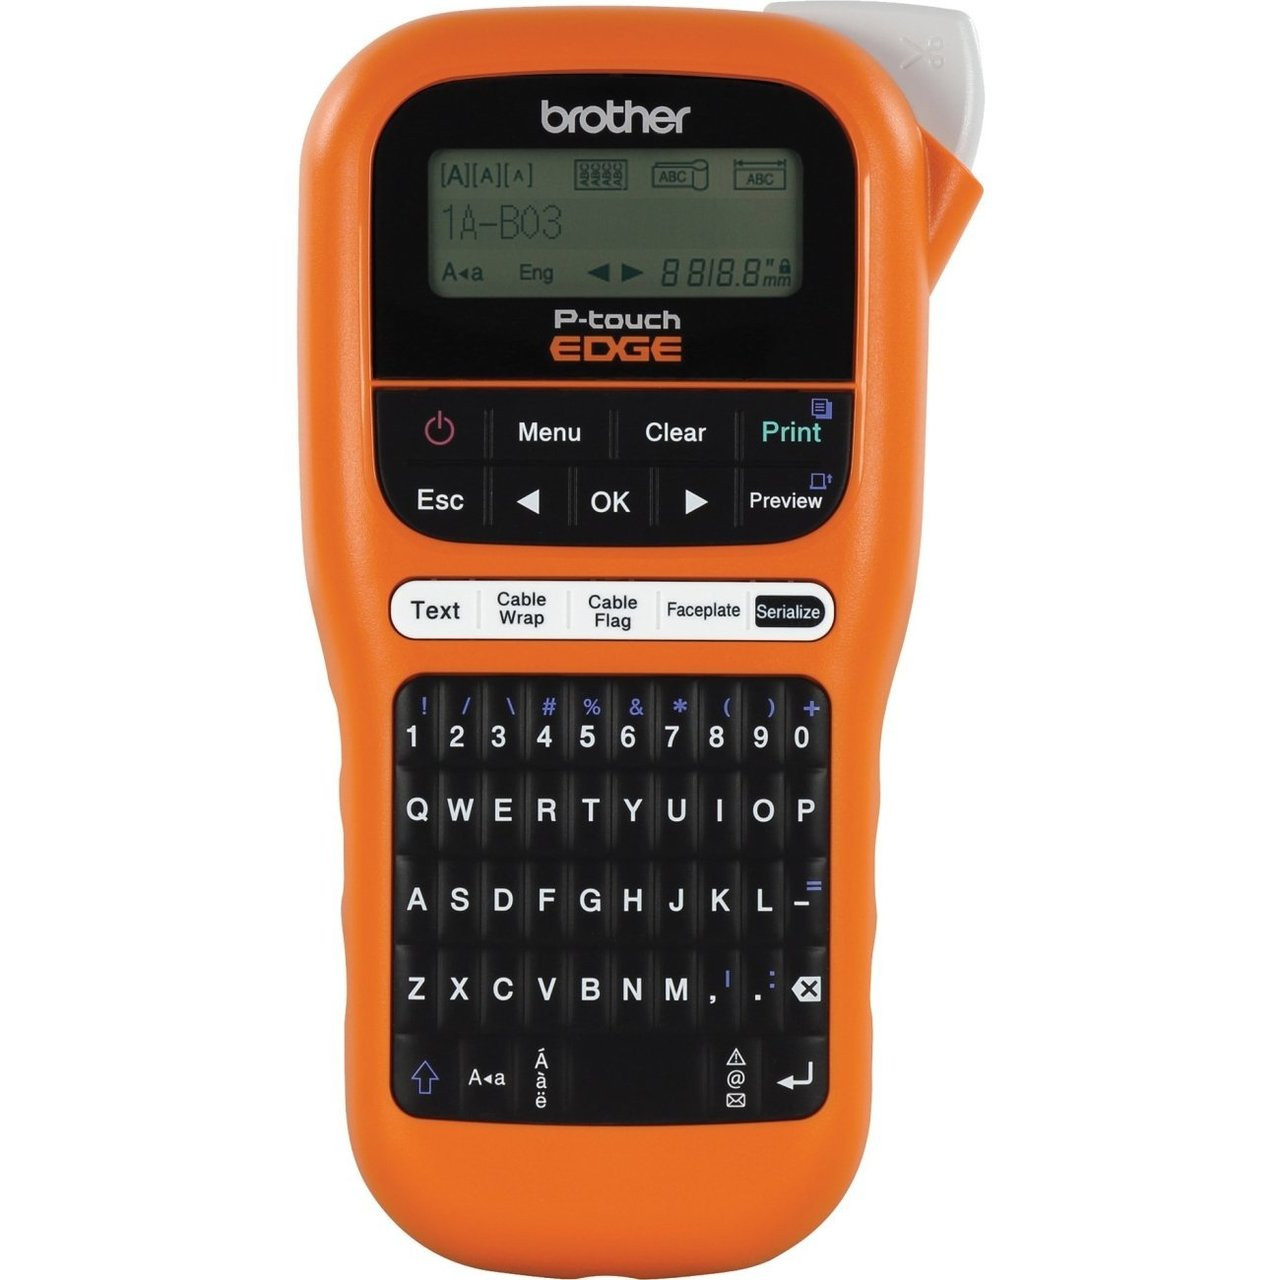 Brother P Touch 110 Handheld Label Maker: Brother PT-E110 Handheld Industrial P-touch Edge Label Maker